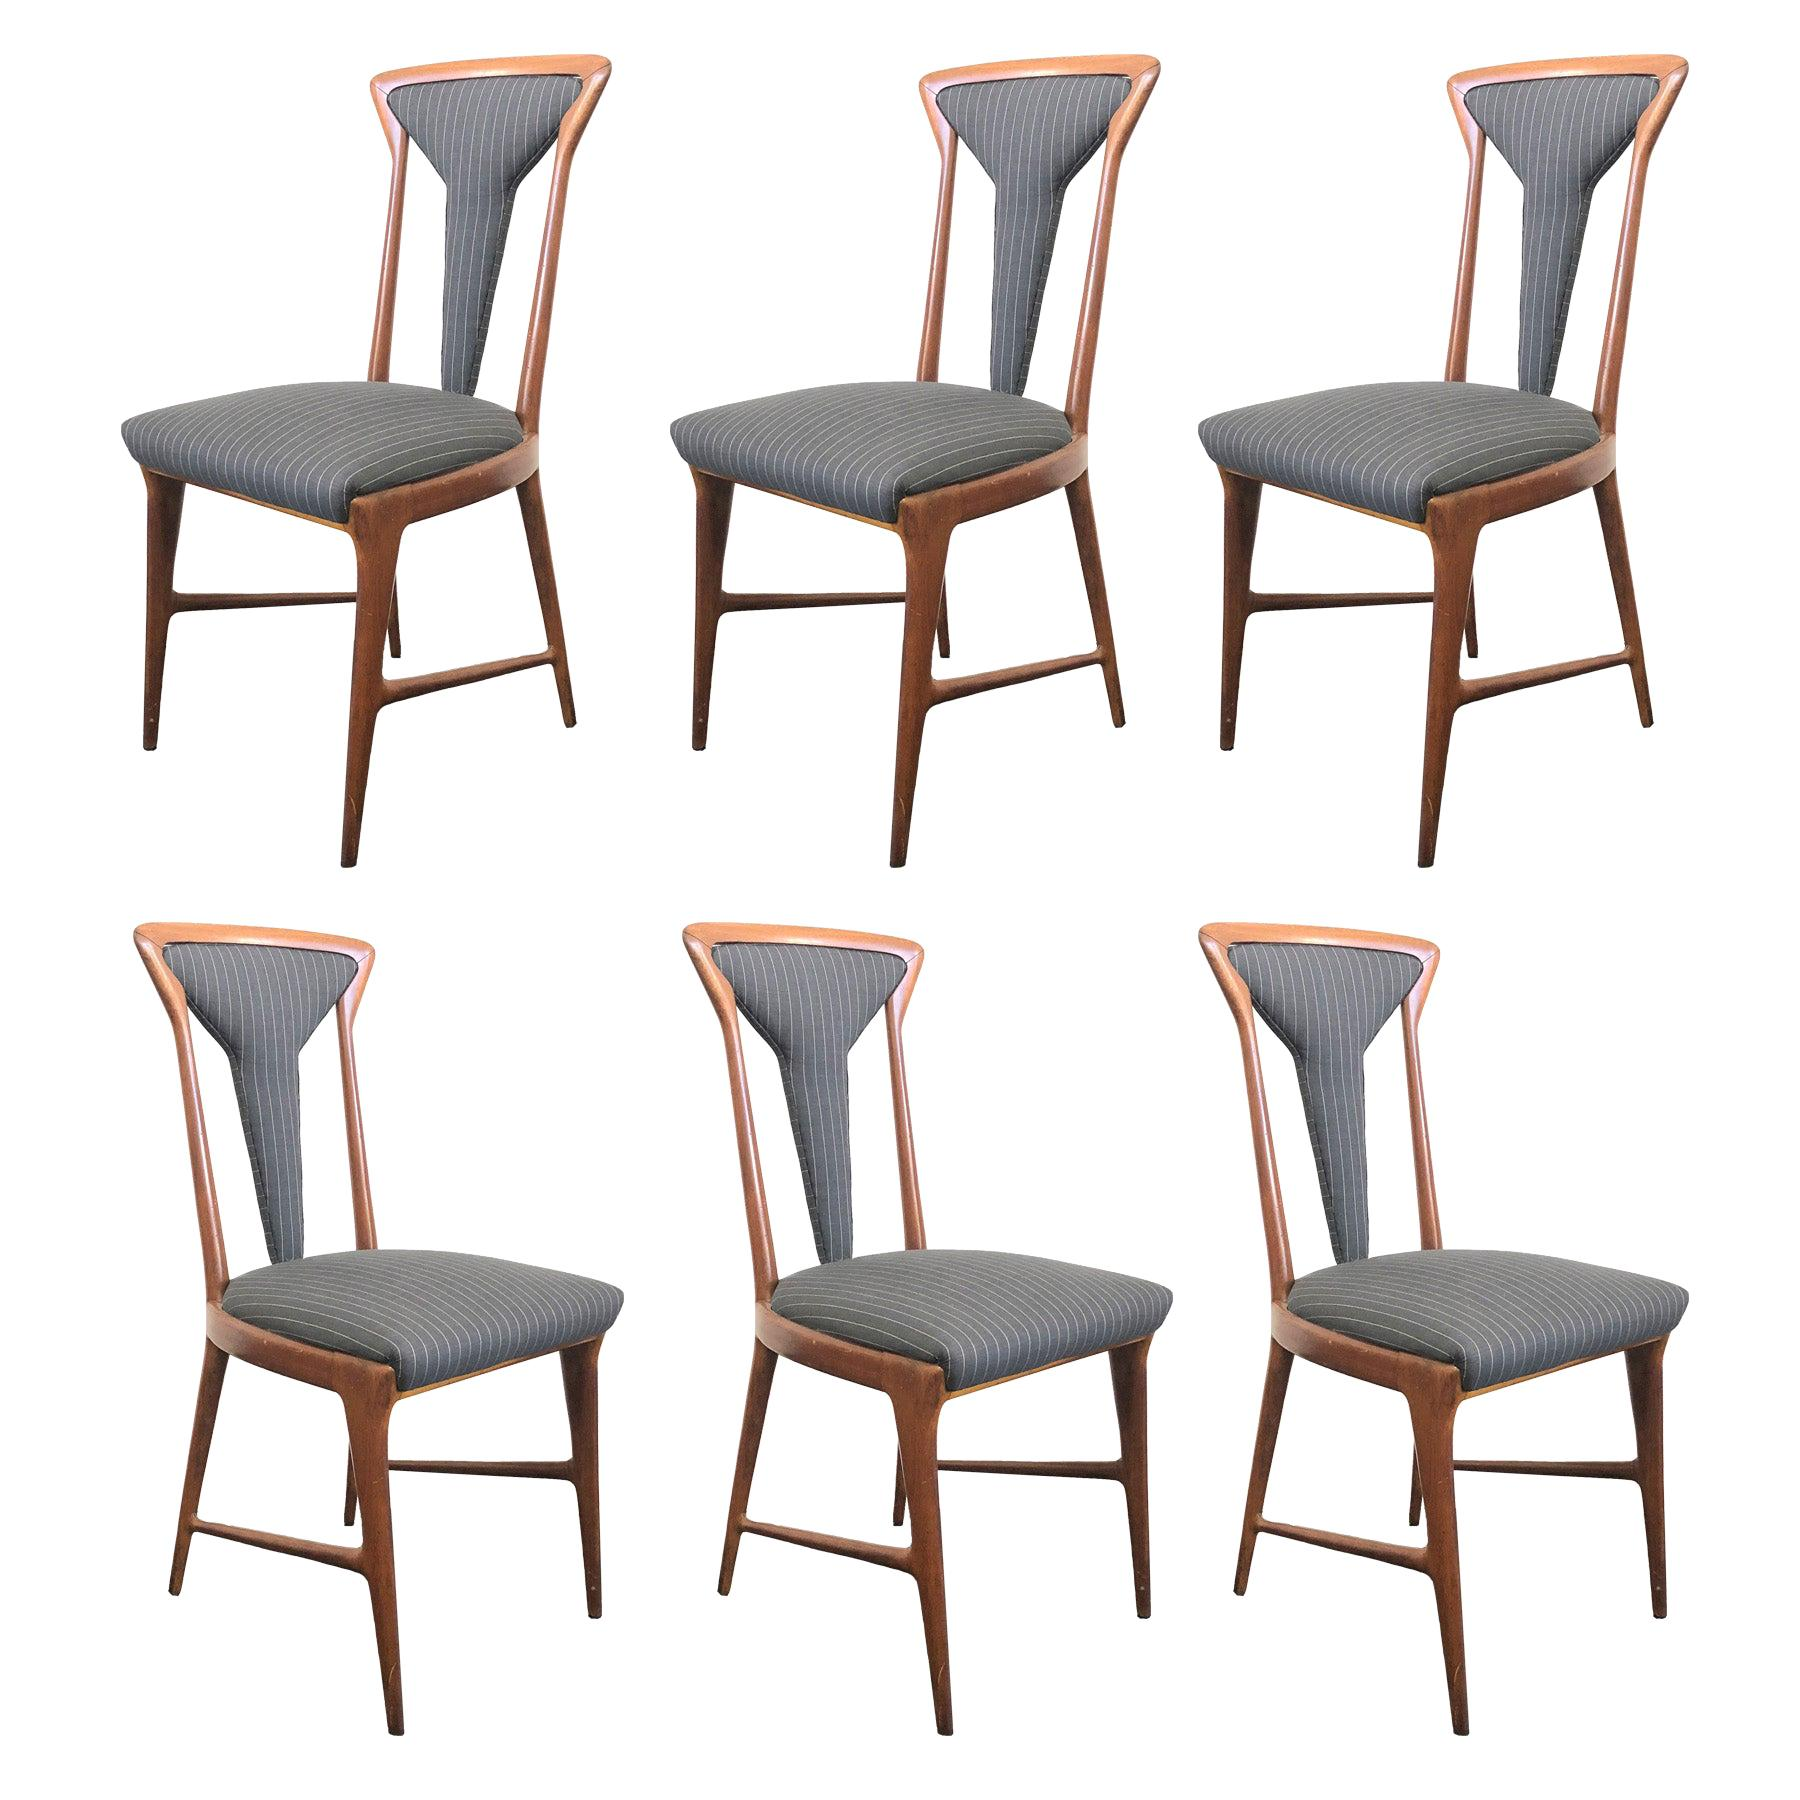 Set of 6, 1950's Carlo De Carli Upholstered Dining Chairs